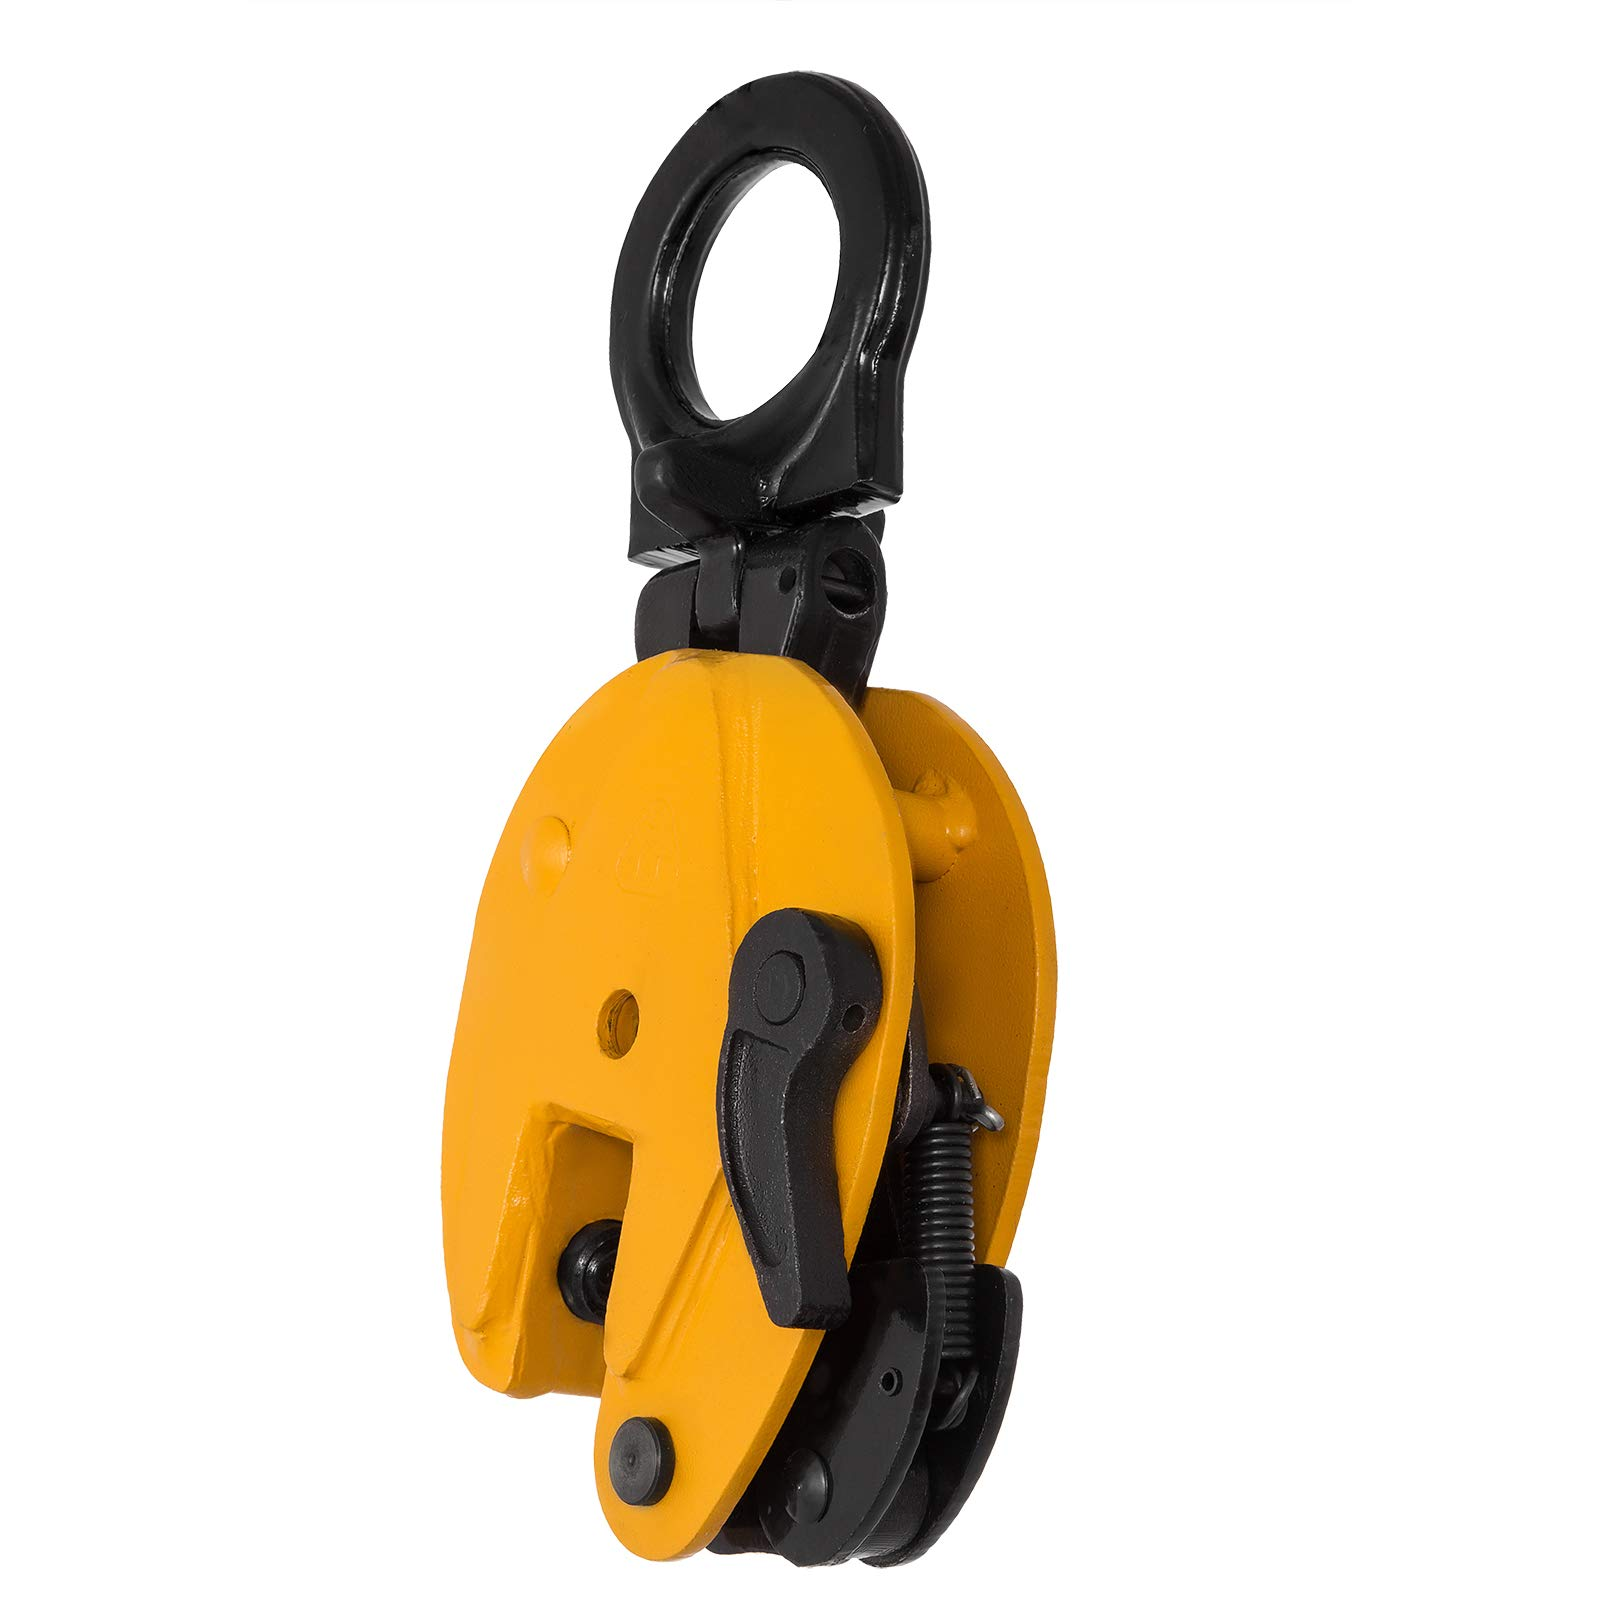 VEVOR 1T Plate Clamp 2204Lbs Plate Lifting Clamp Jaw Opening 0.6 inch Vertical Plate Clamp for Lifting and Transporting